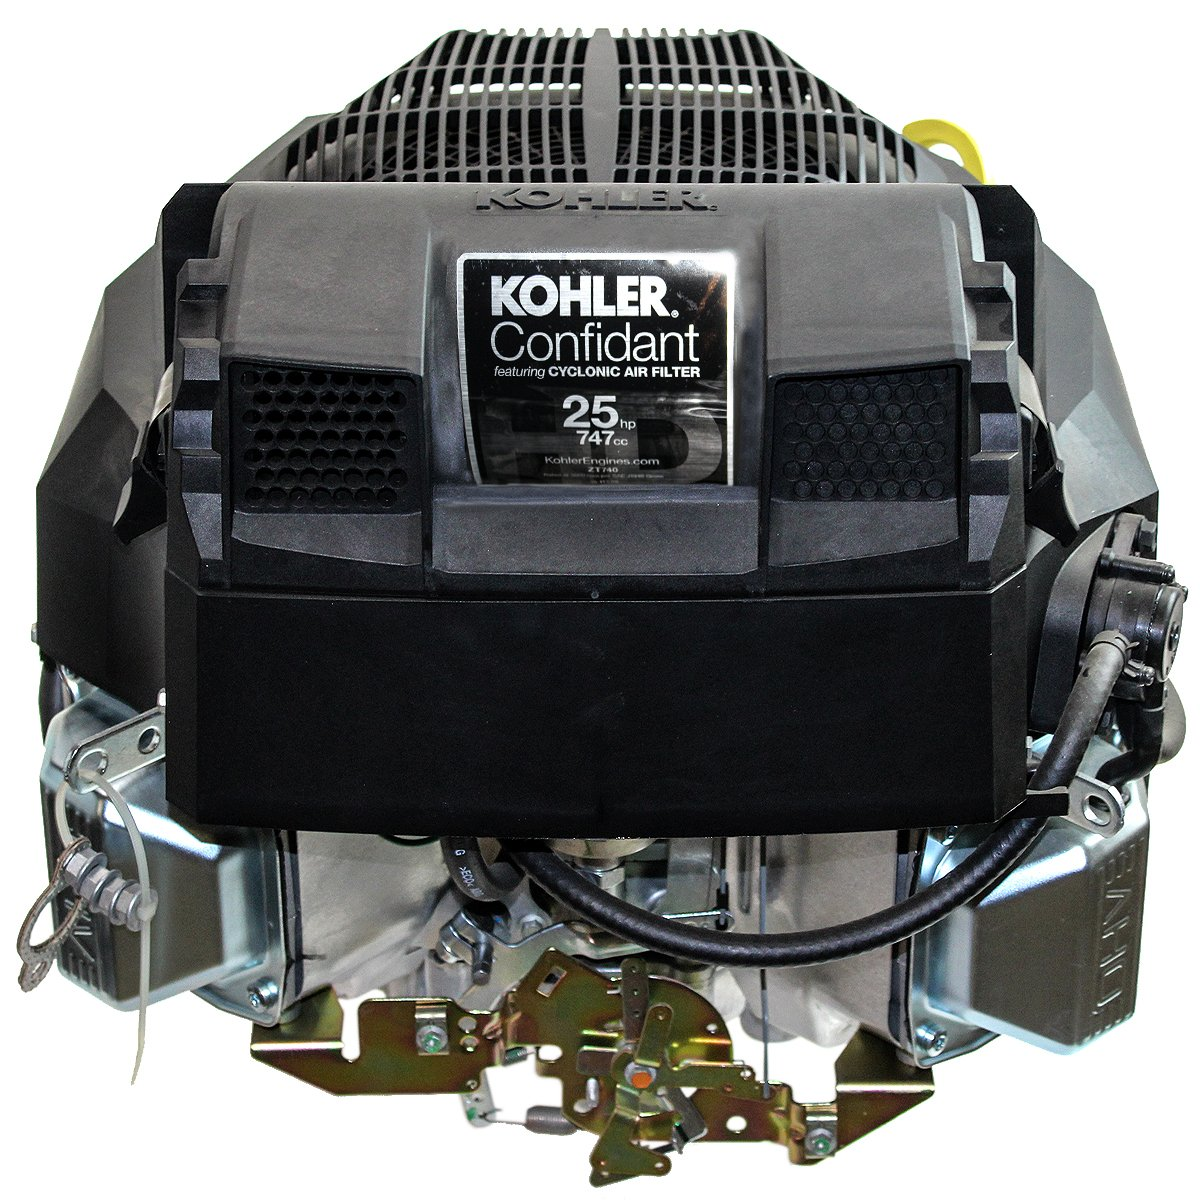 Kohler 25hp Confidant, Vertical 1-1/8'' x 4-3/8'' Shaft, OHV, Electric Start, 15 Amp Alt, Fuel Pump, Oil Filter, Remote Choke, Engine